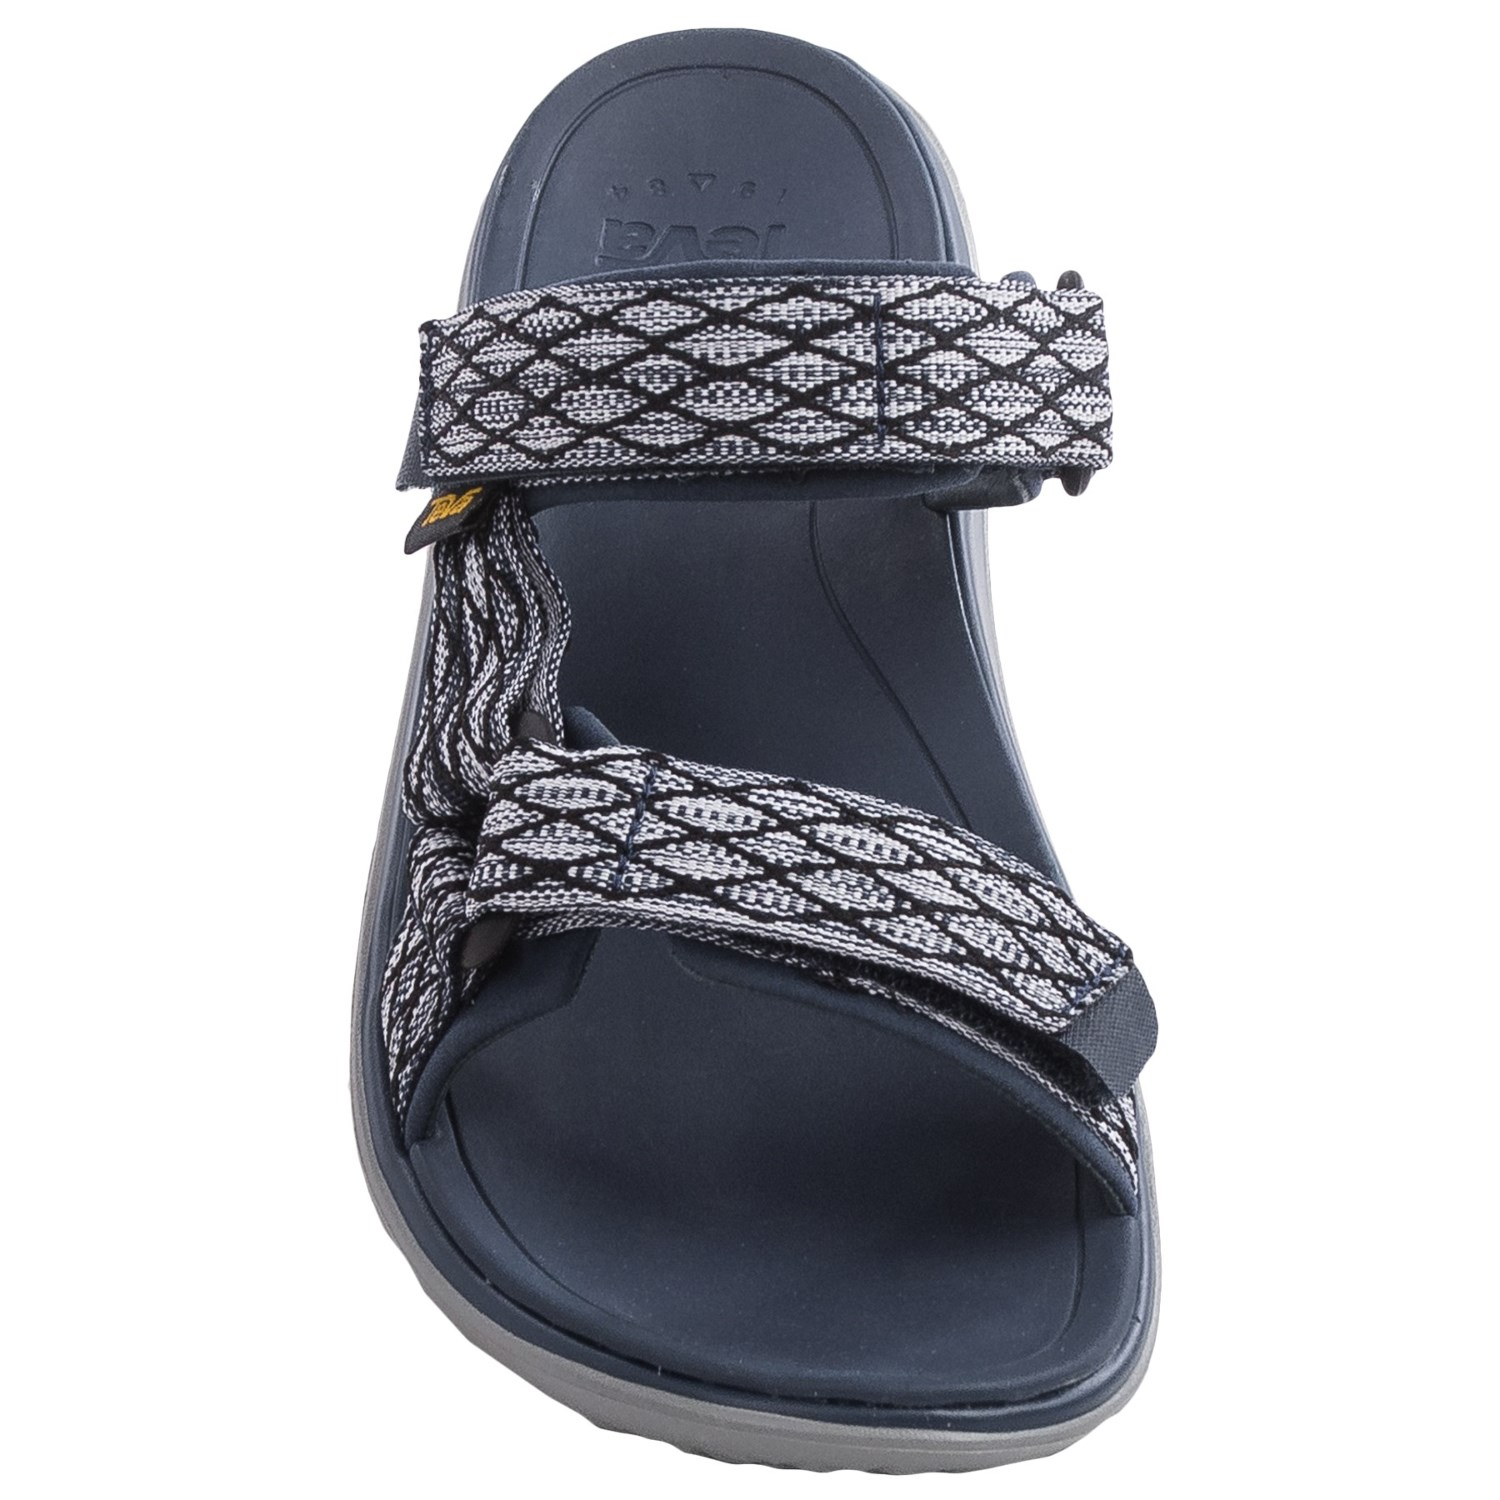 7d50612e2c95e Teva Terra-Float Slide Sandals (For Men) - Save 47%